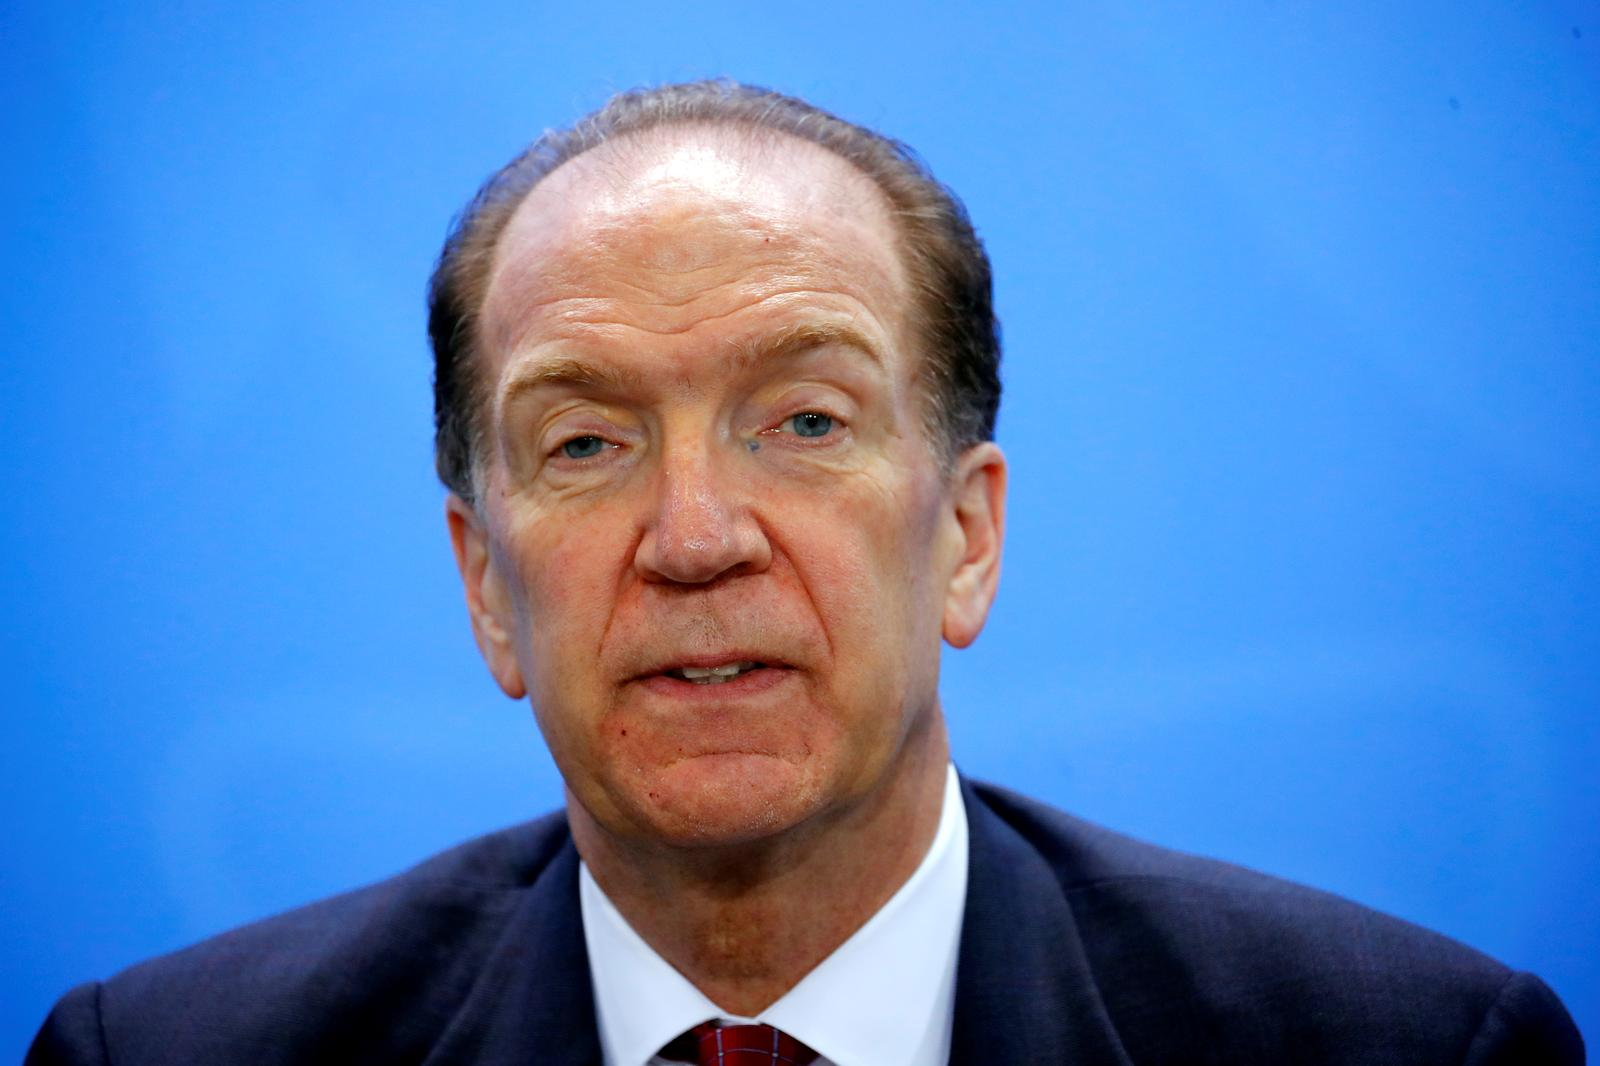 Debt cancellation needed to help poorest countries: World Bank president